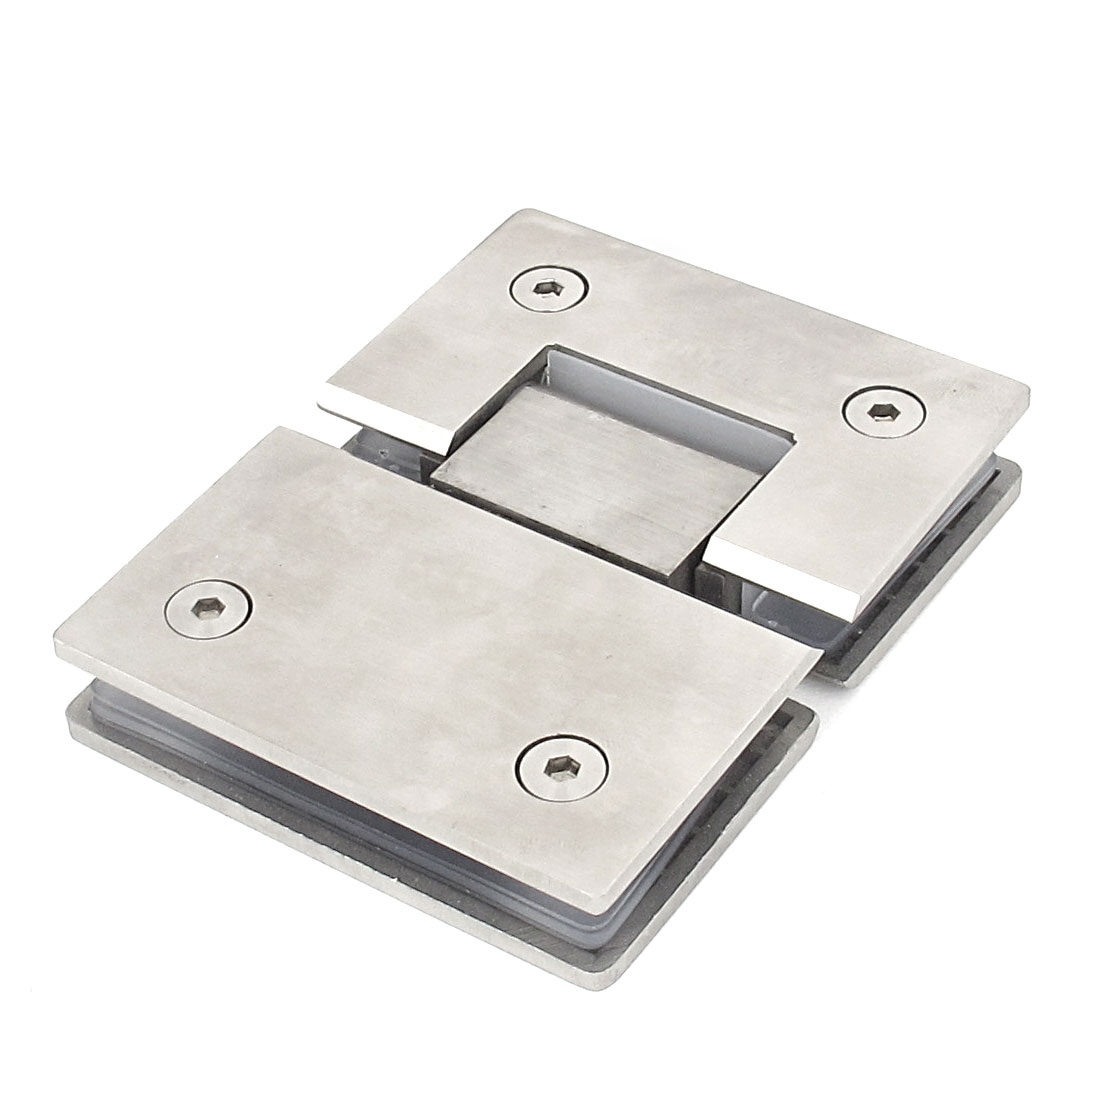 8mm Thick 202 Stainless Steel Bathroom Stair Glass Clip Clamp Support Bracket